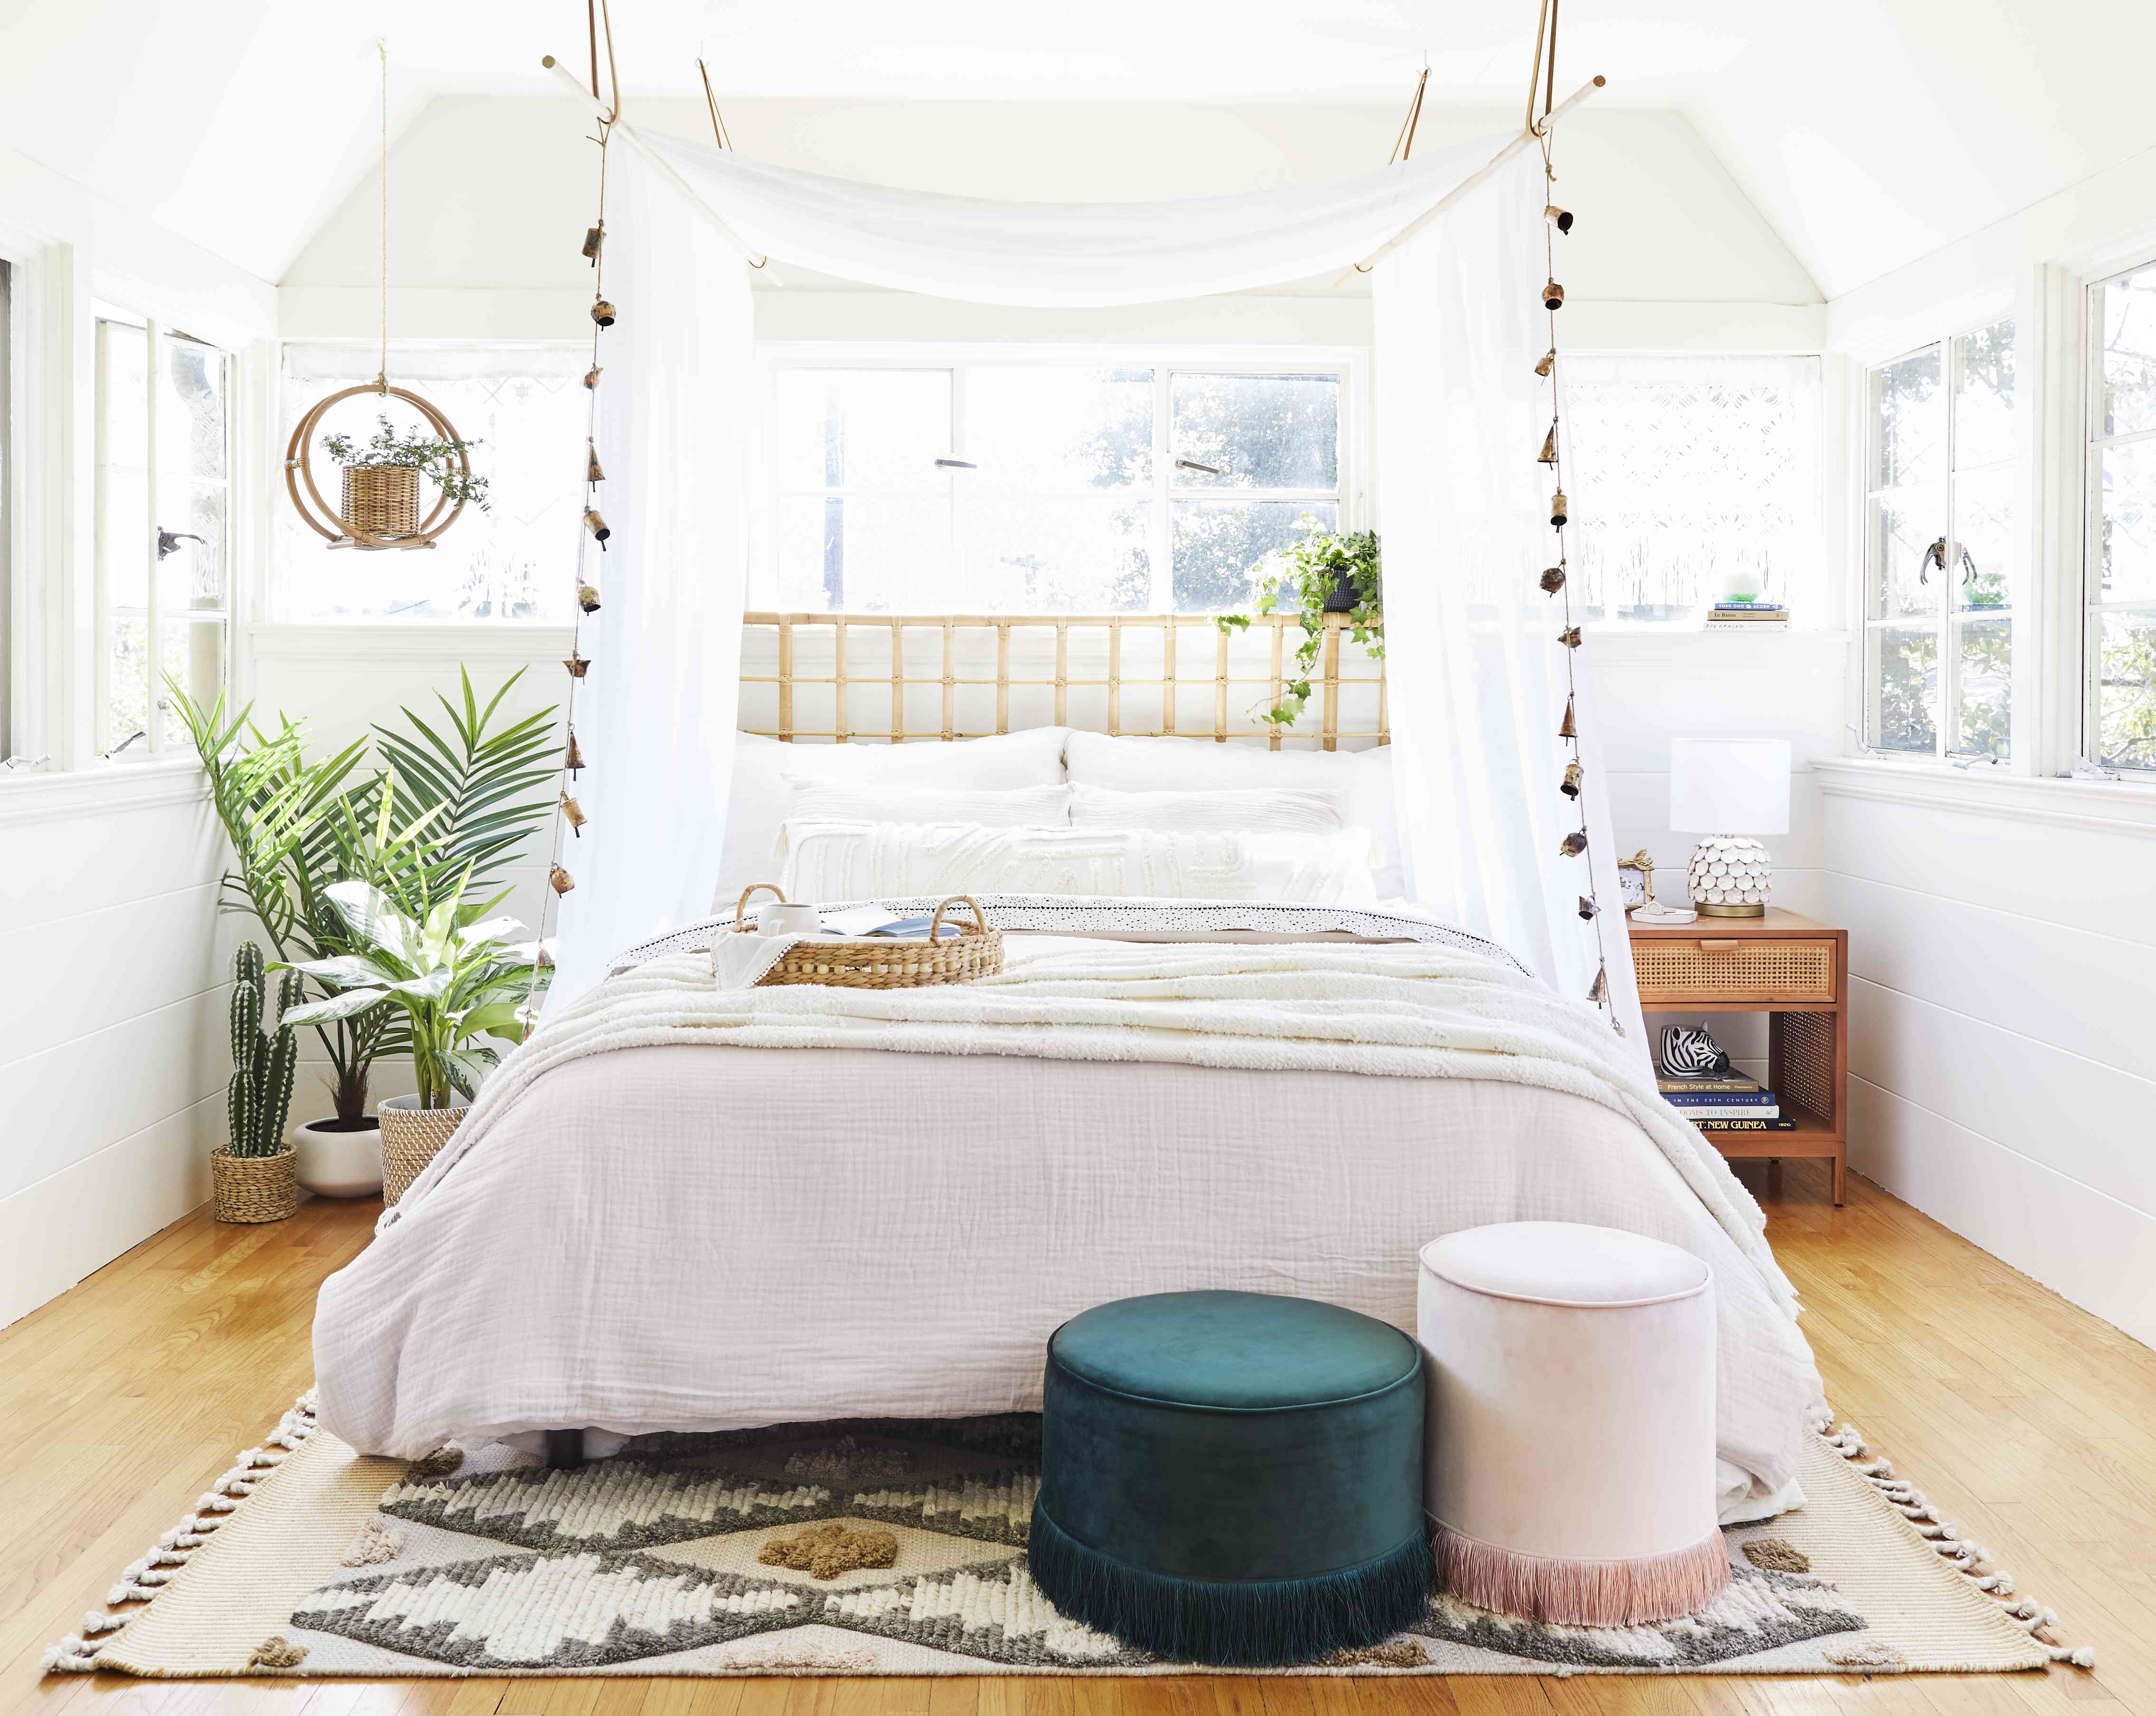 White bedroom with canopy and tropical touches